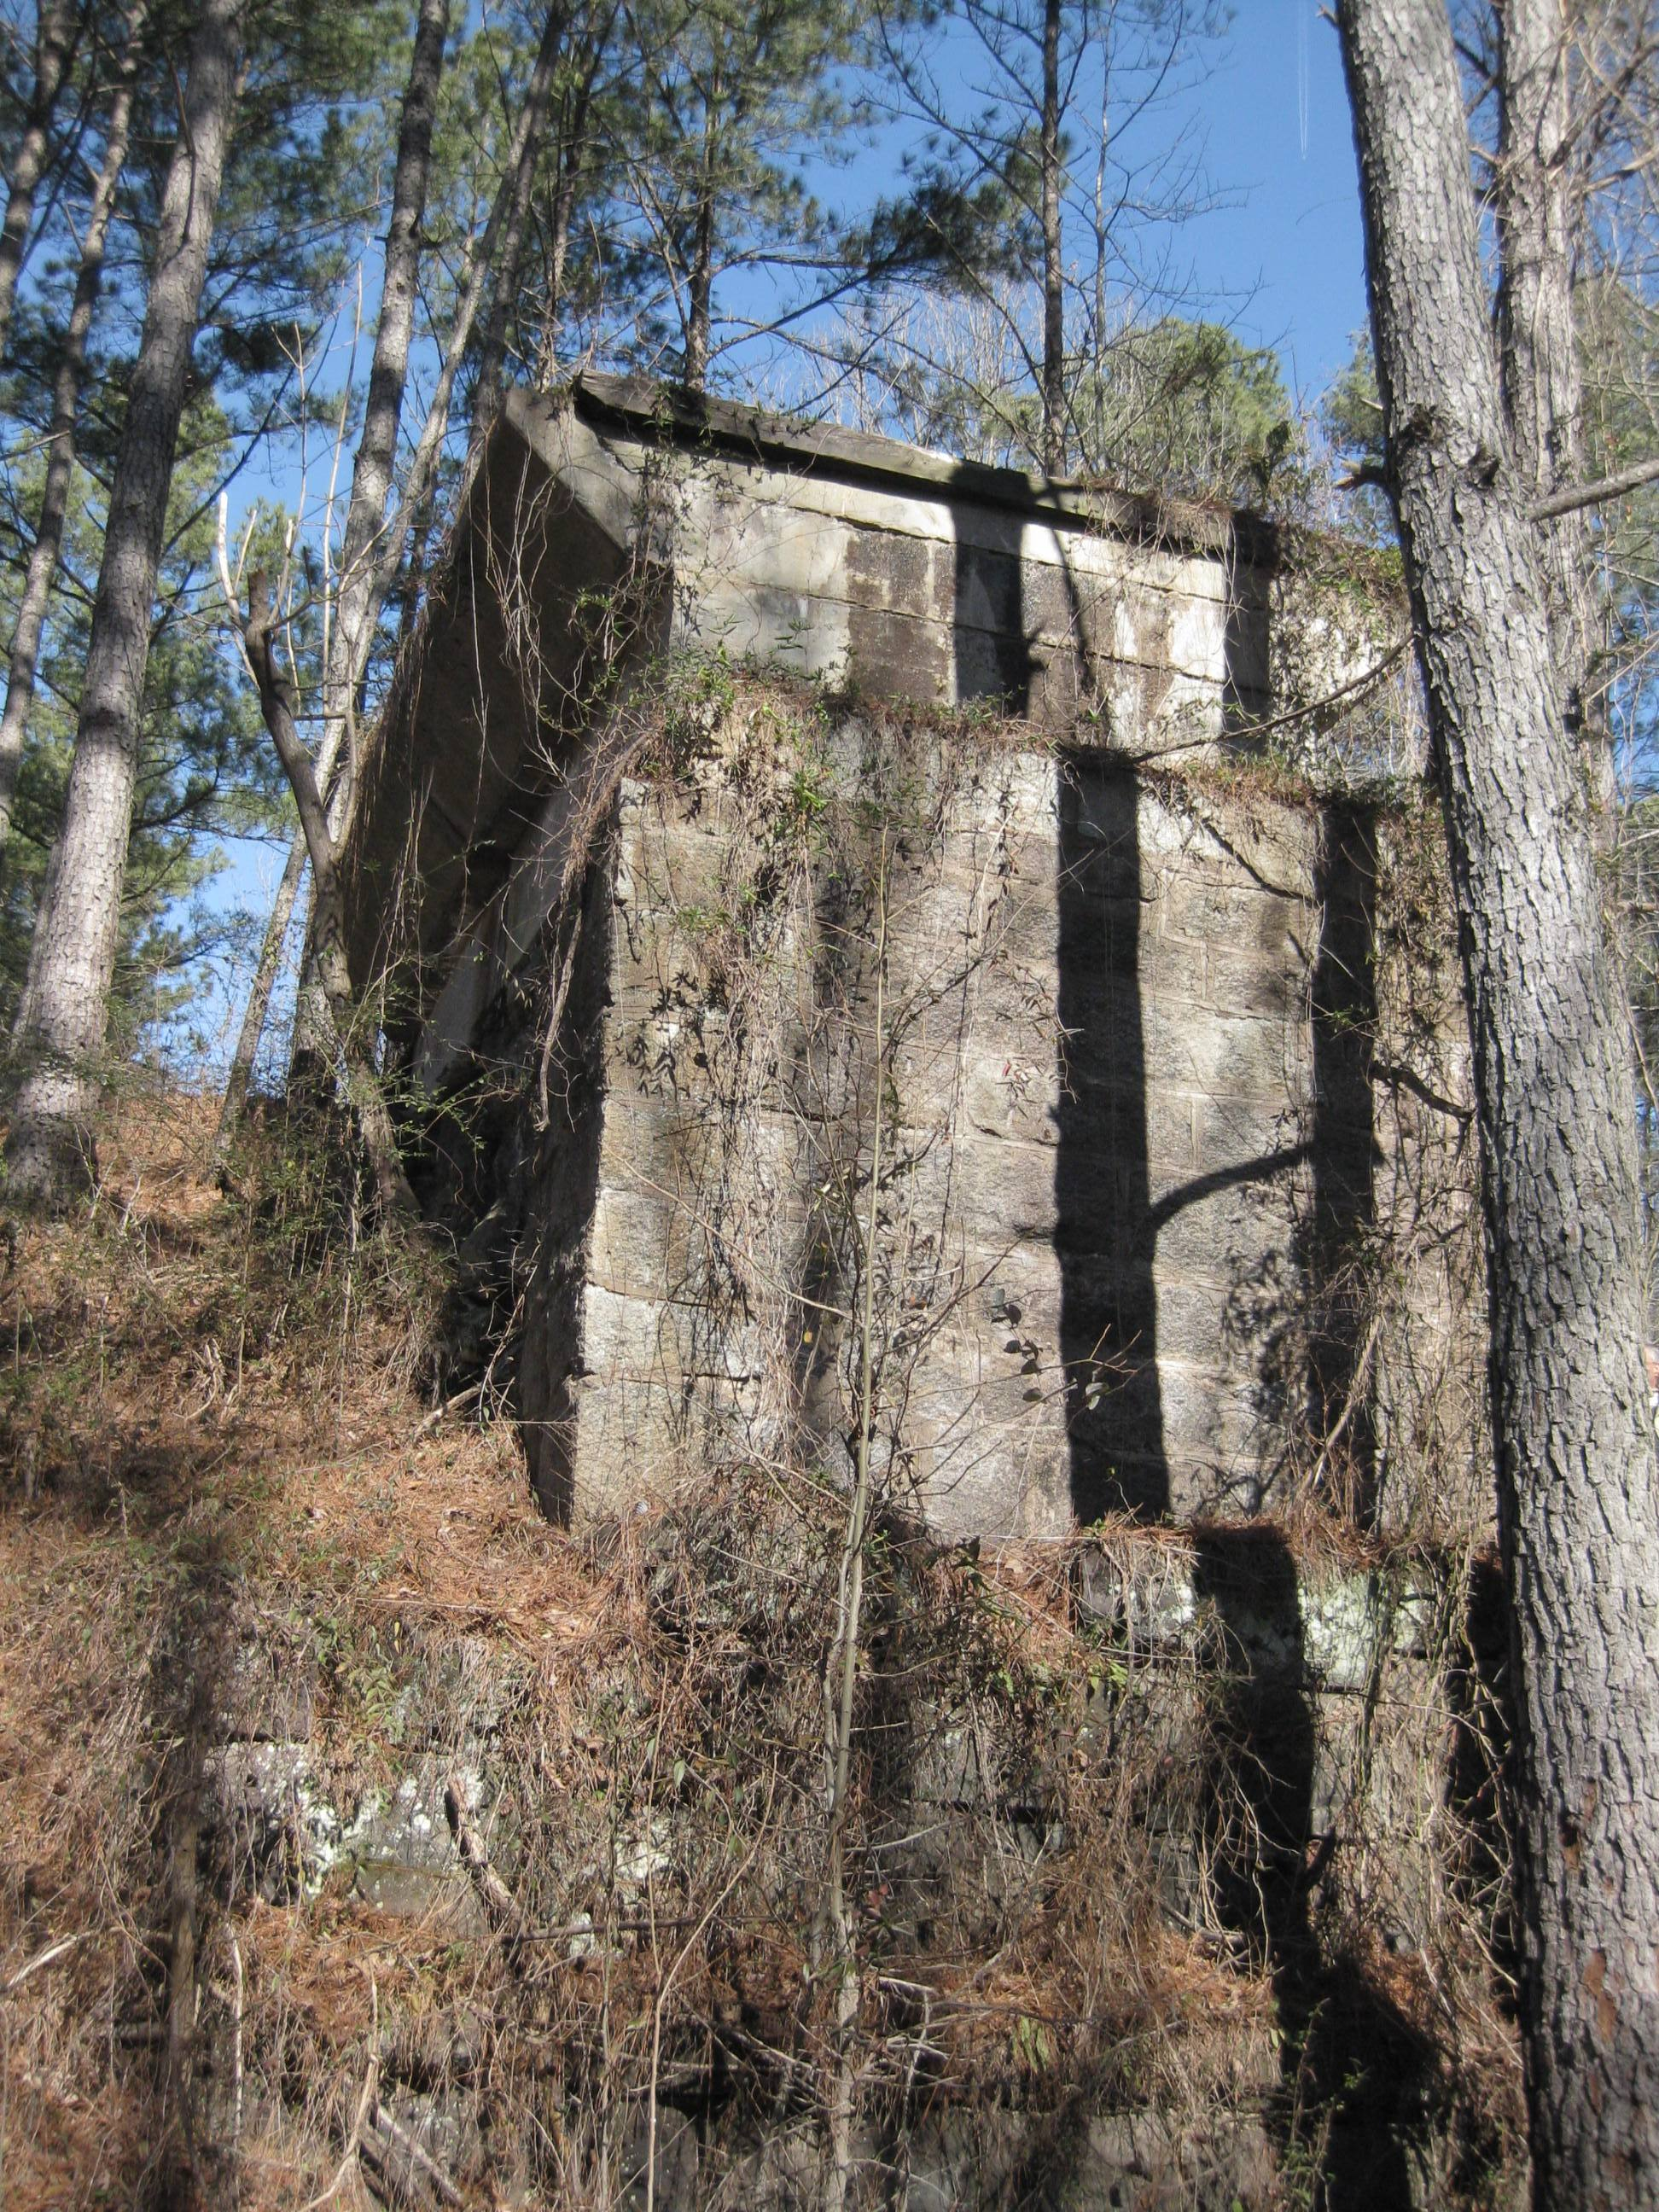 Railroad bridge abutment from the ground.